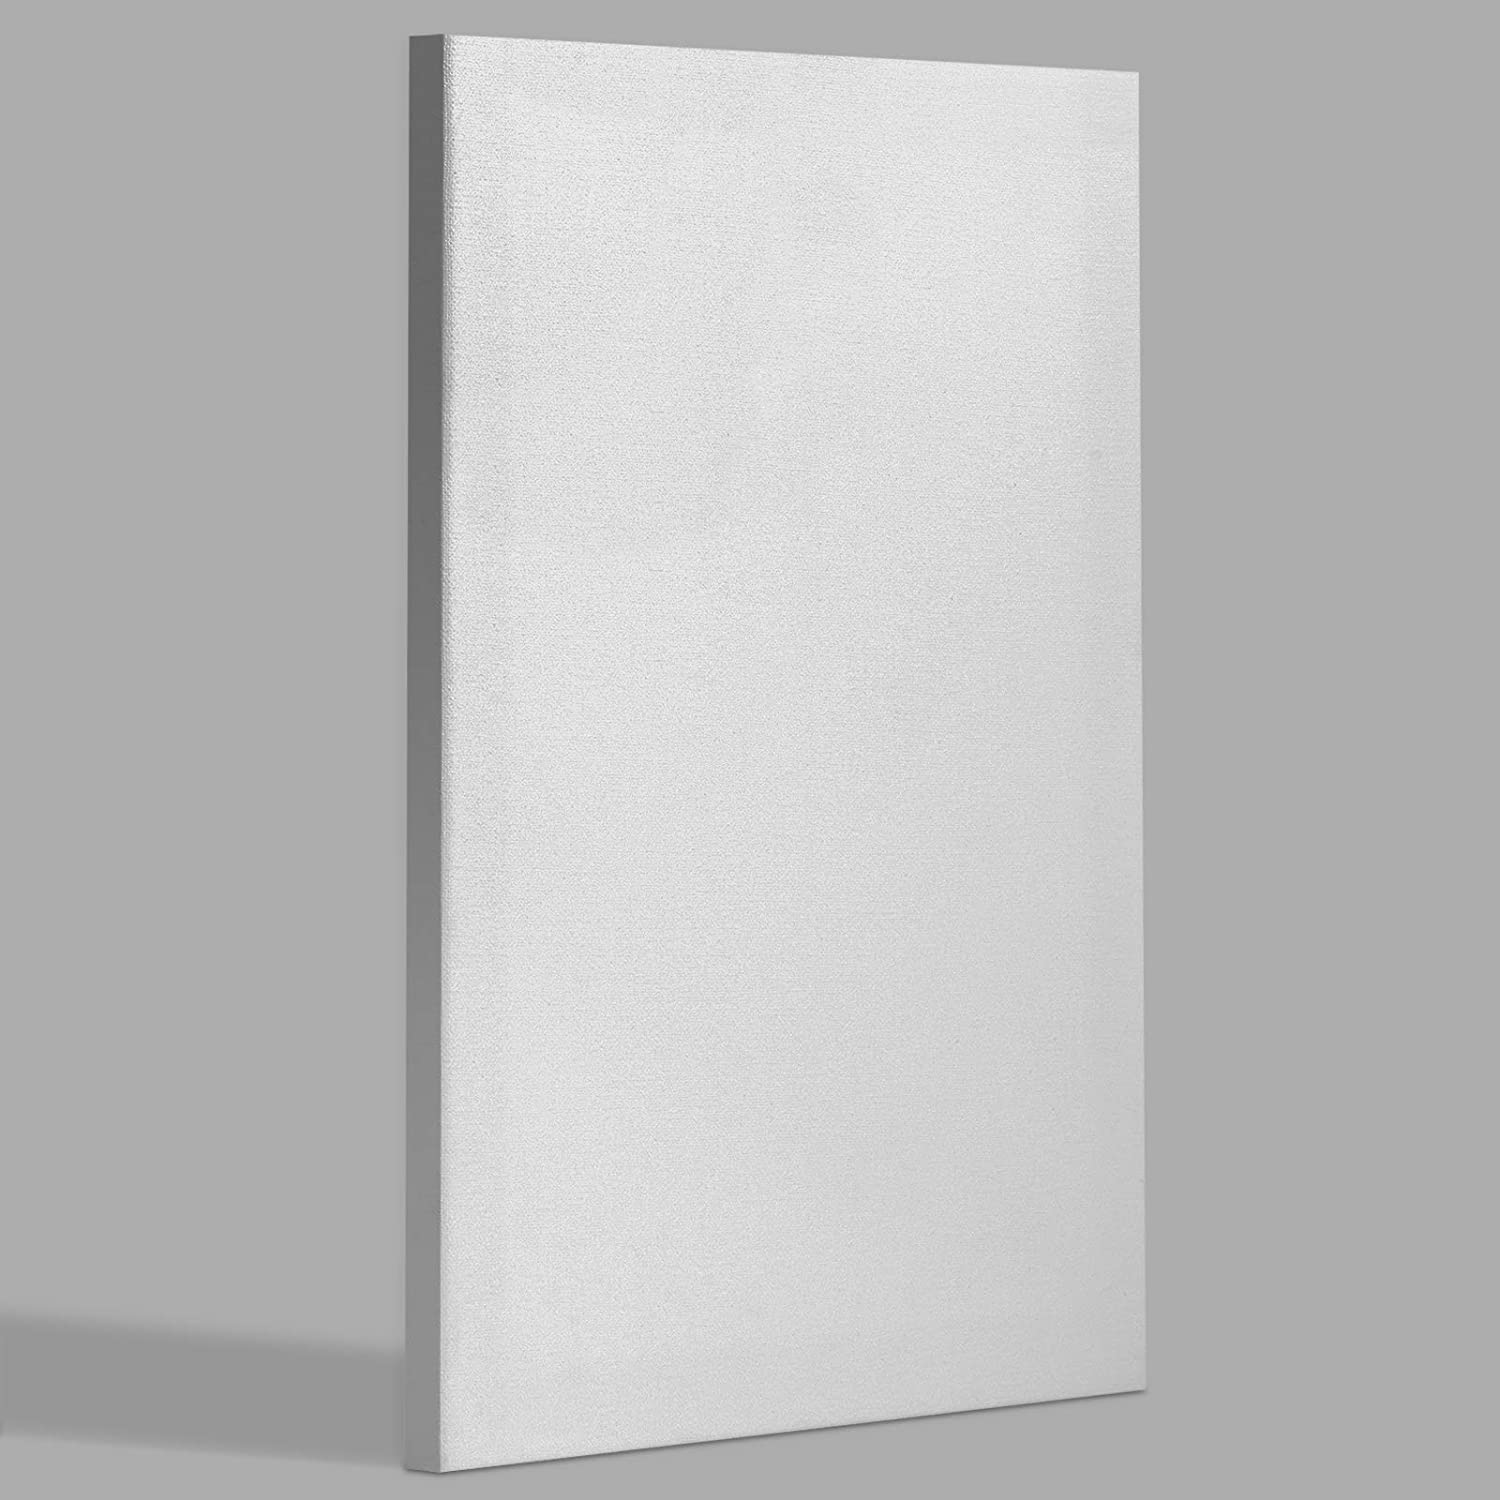 miniature 32 - Americanflat Stretched Canvas in White 100% Cotton Wooden Frames & Acid Free